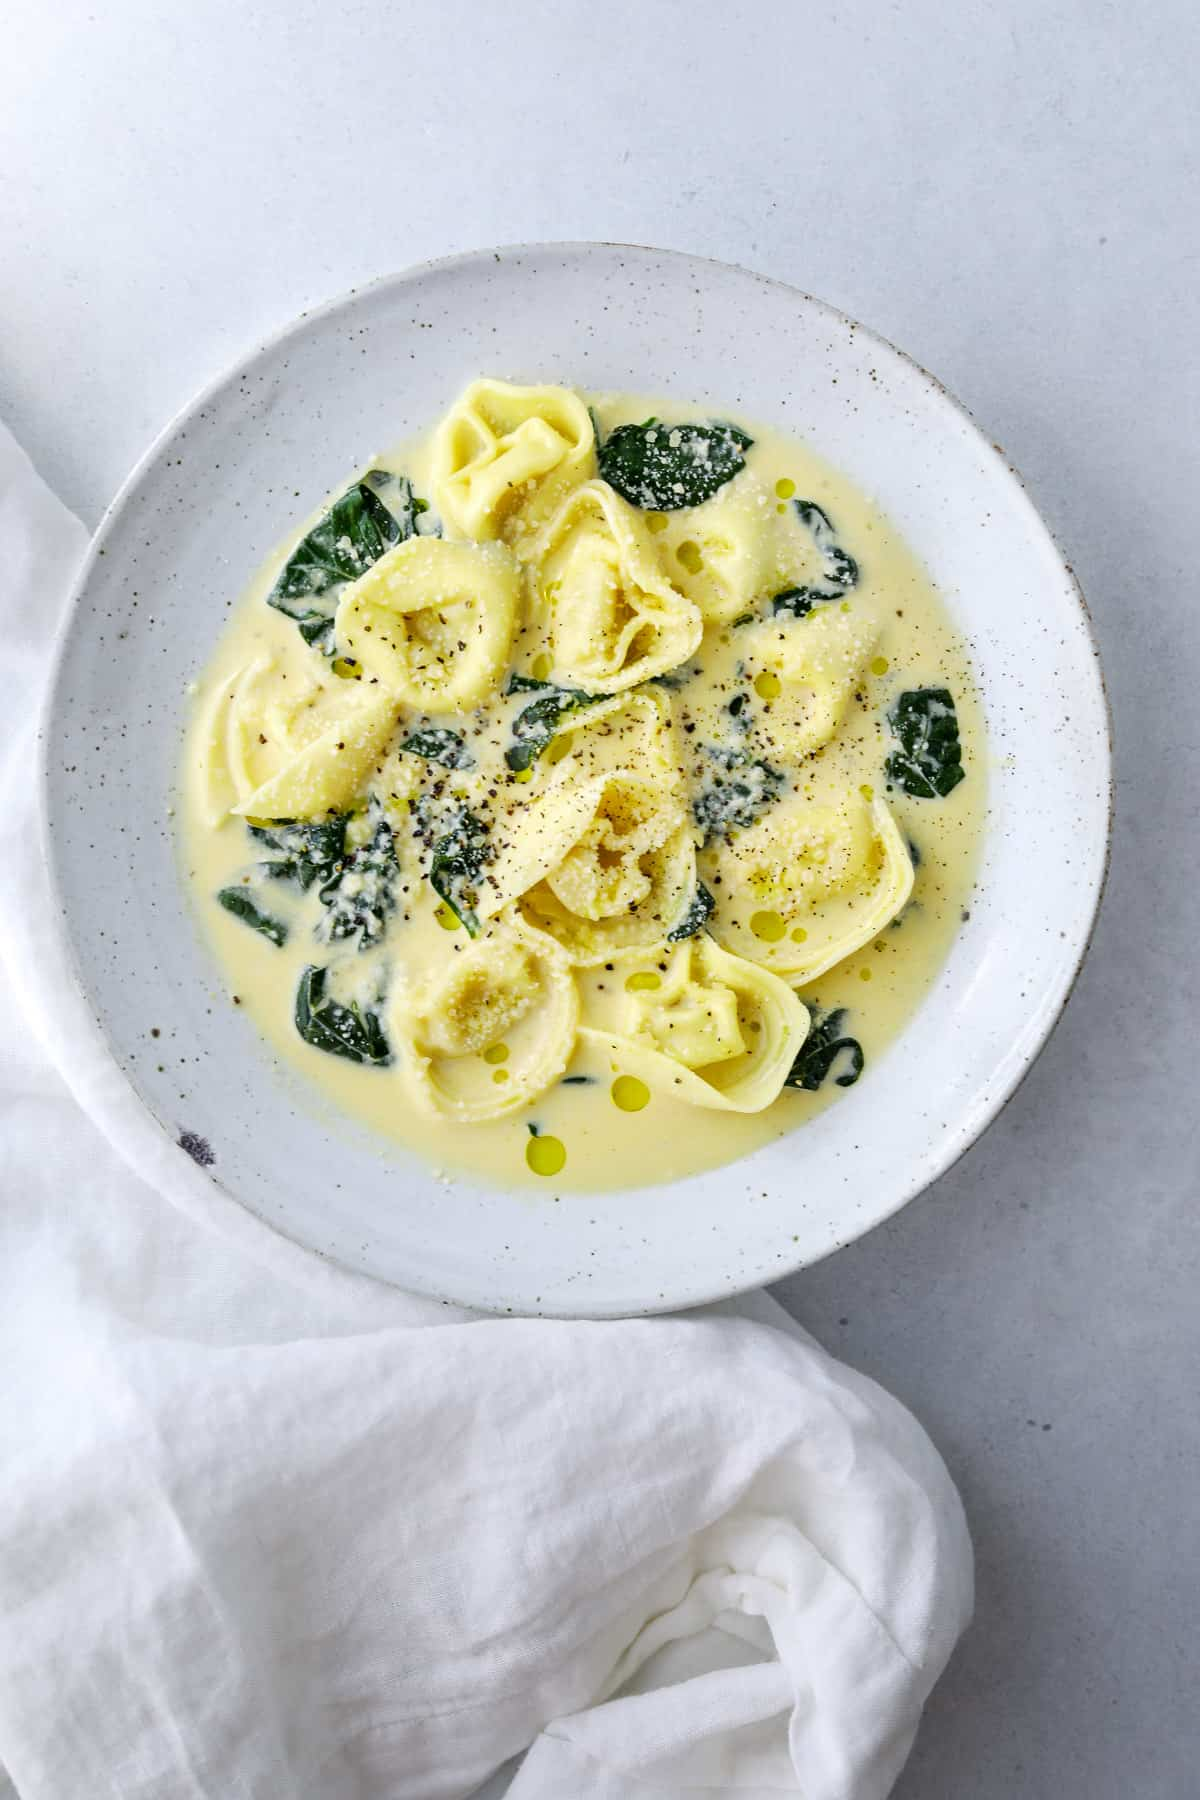 a ceramic bowl filled with a creamy soup of tortellini, spinach and topped with freshly cracked pepper and parmesan cheese